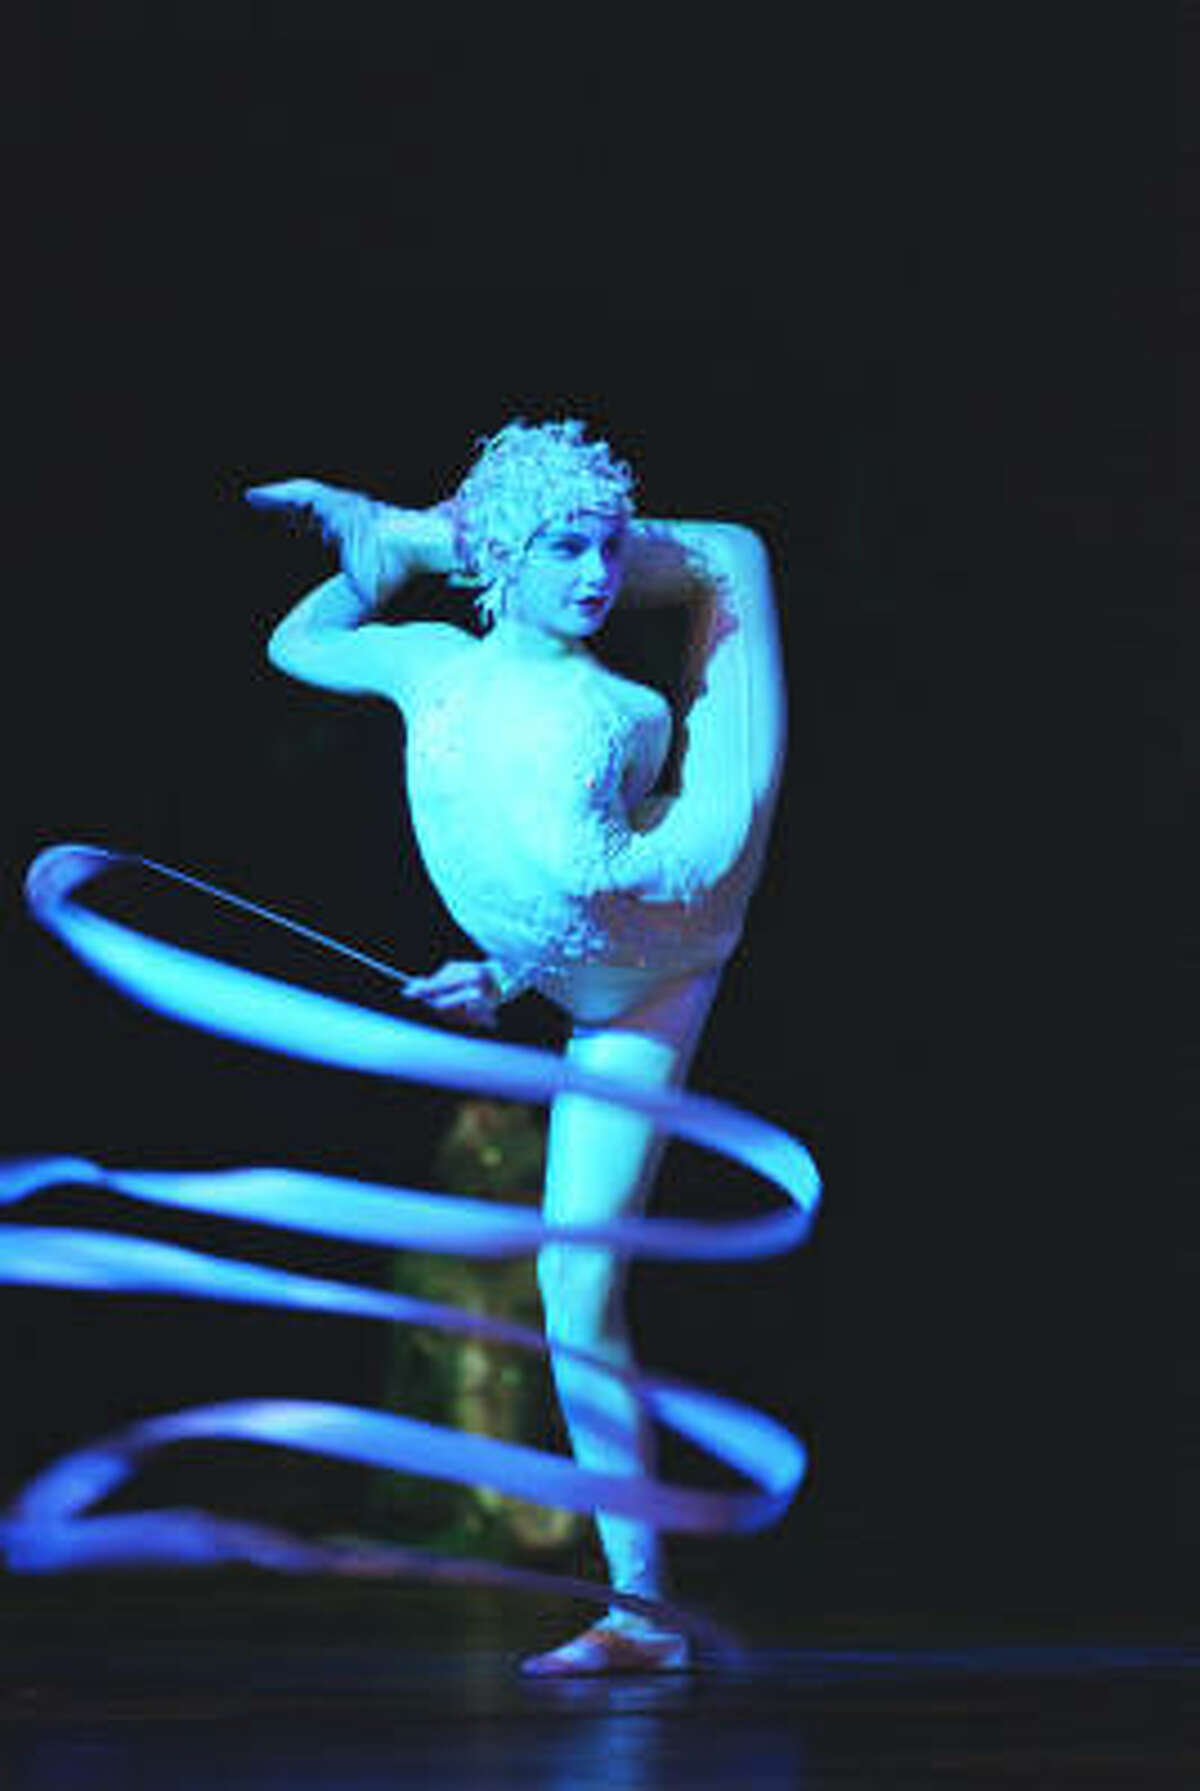 The popular acrobatic show made famous in Las Vegas is coming to the Toyota Center from Nov. 10-14. Tickets go on sale today for the world renowned performance of Cirque du Soleil's